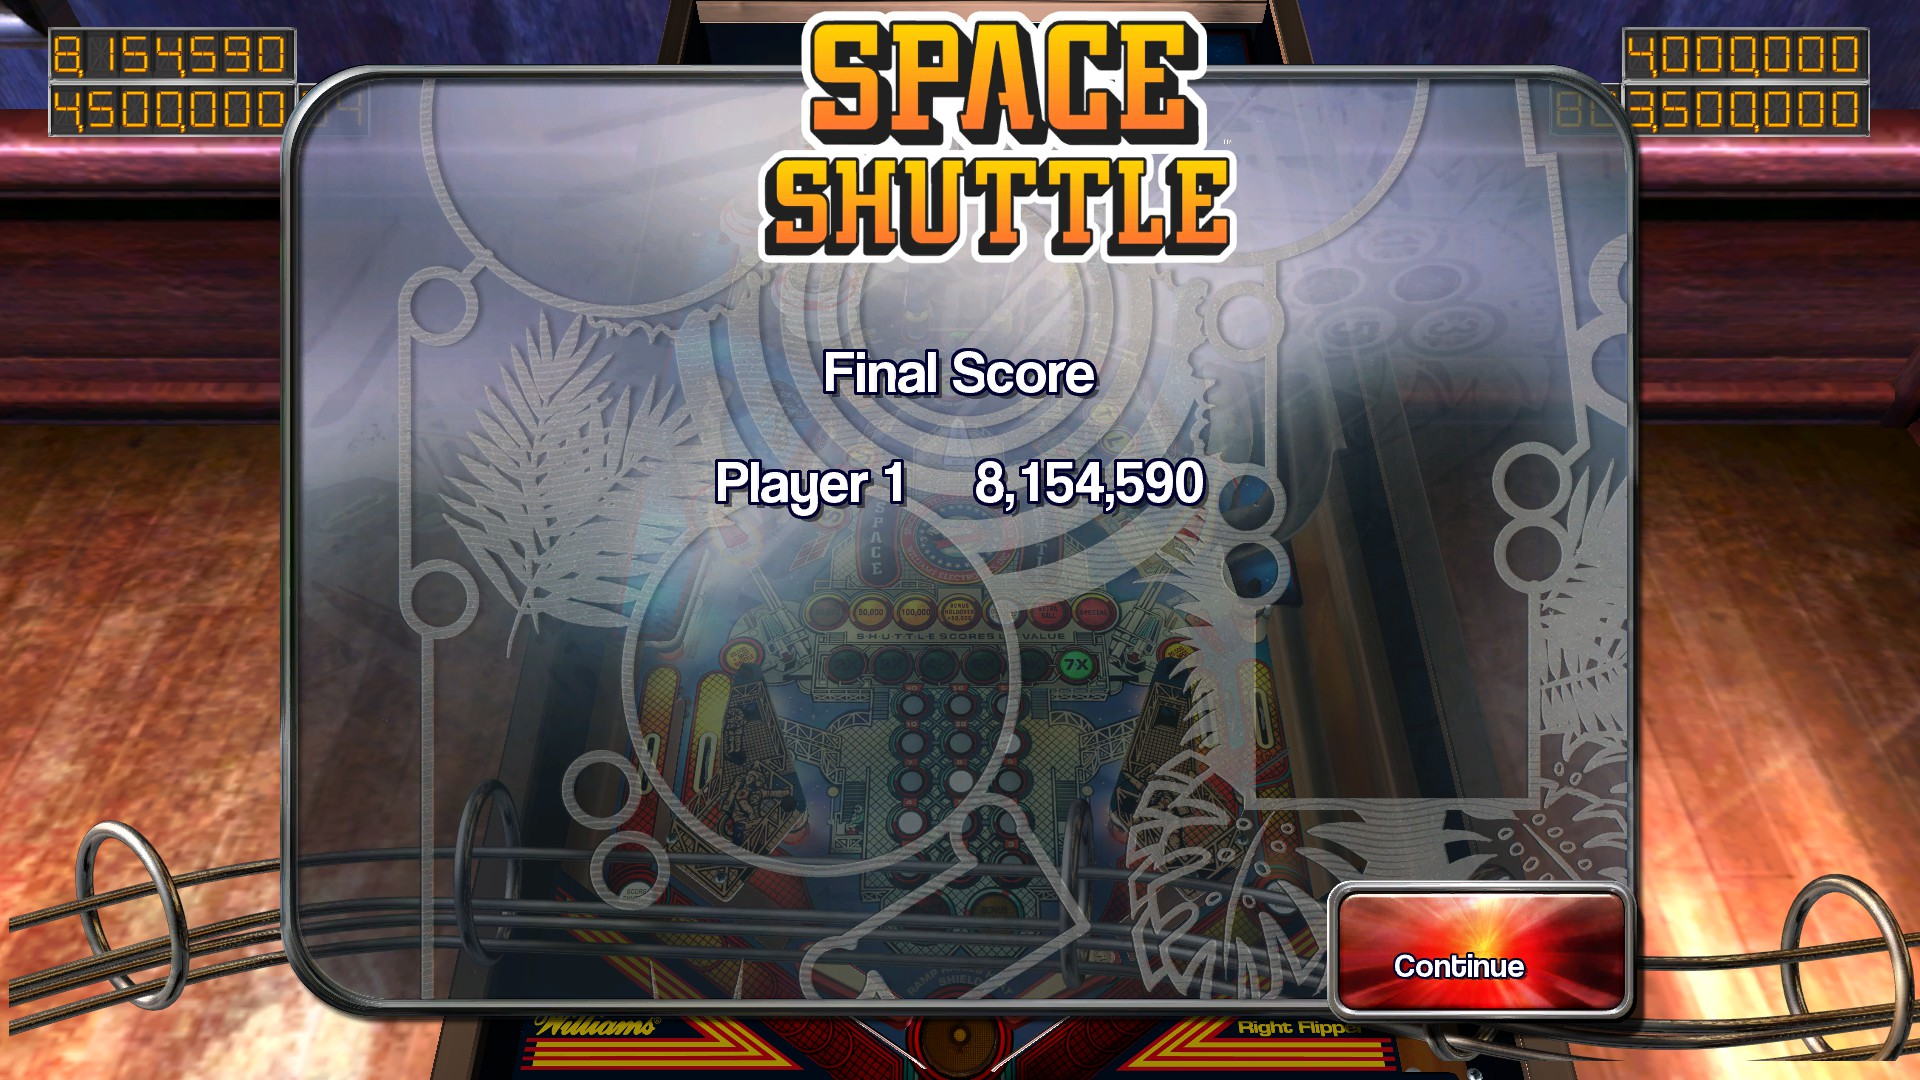 TheTrickster: Pinball Arcade: Space Shuttle (PC) 8,154,590 points on 2016-02-27 06:54:58